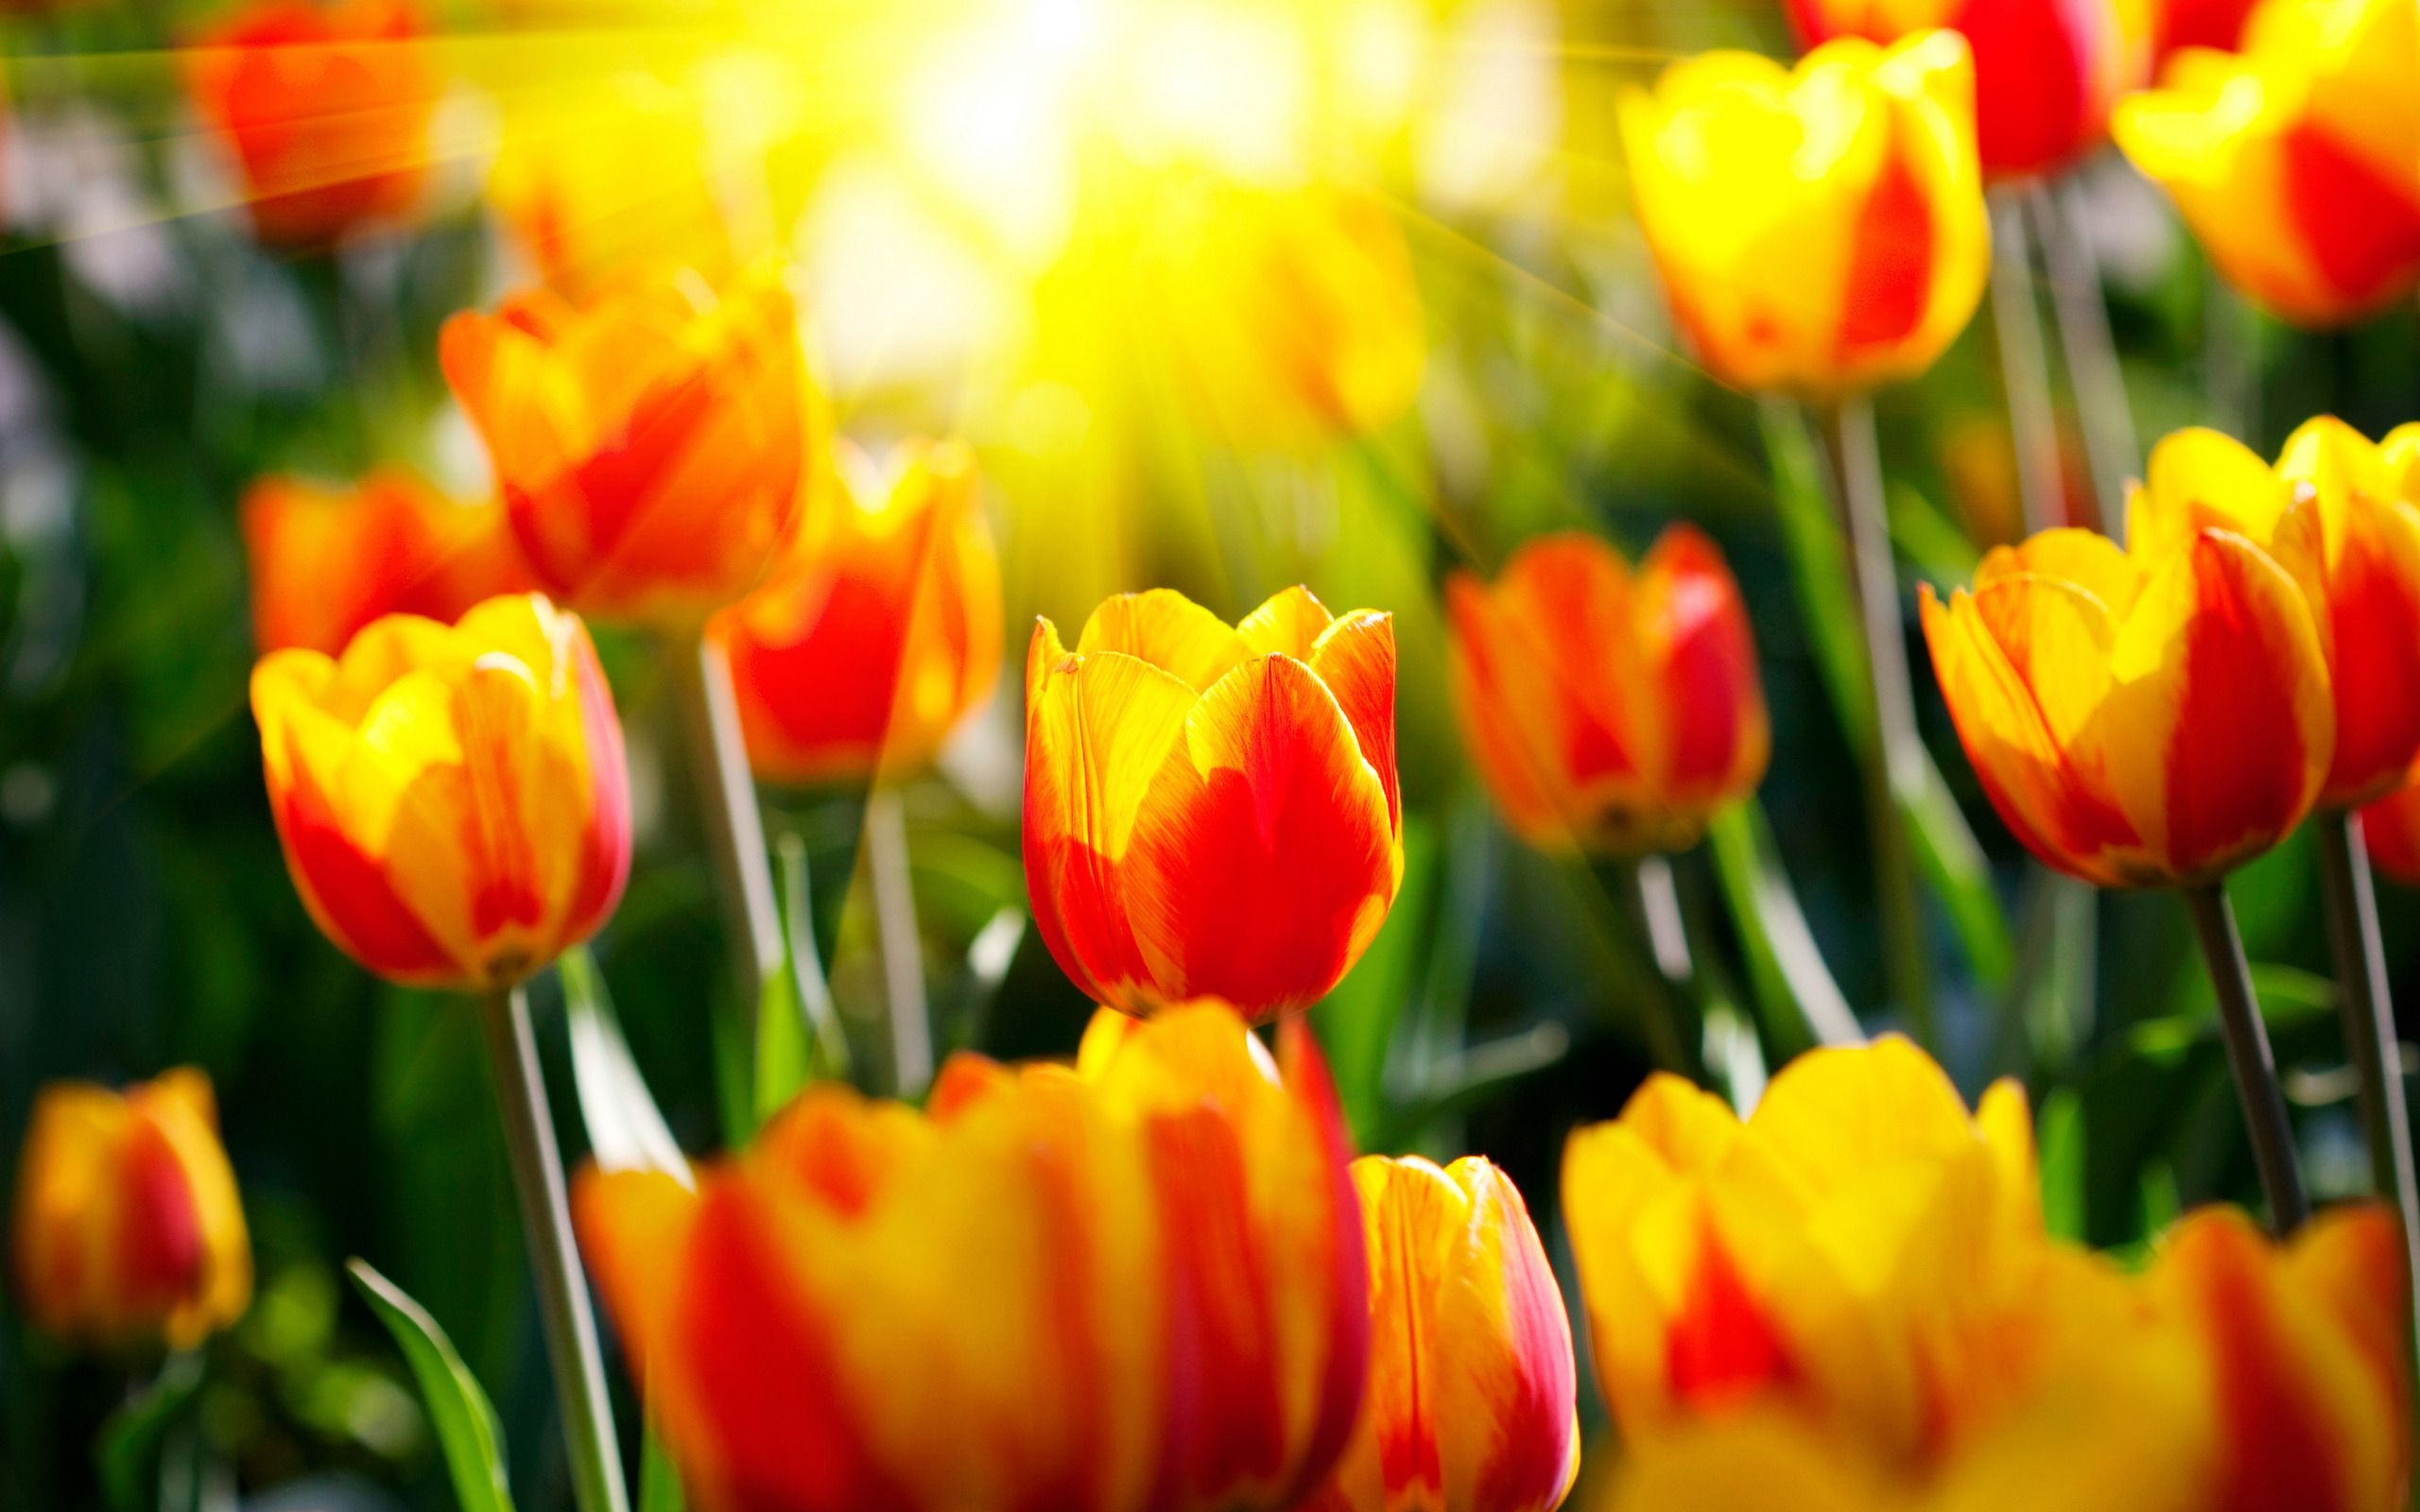 [42+] Tulips Wallpaper For Desktop On WallpaperSafari